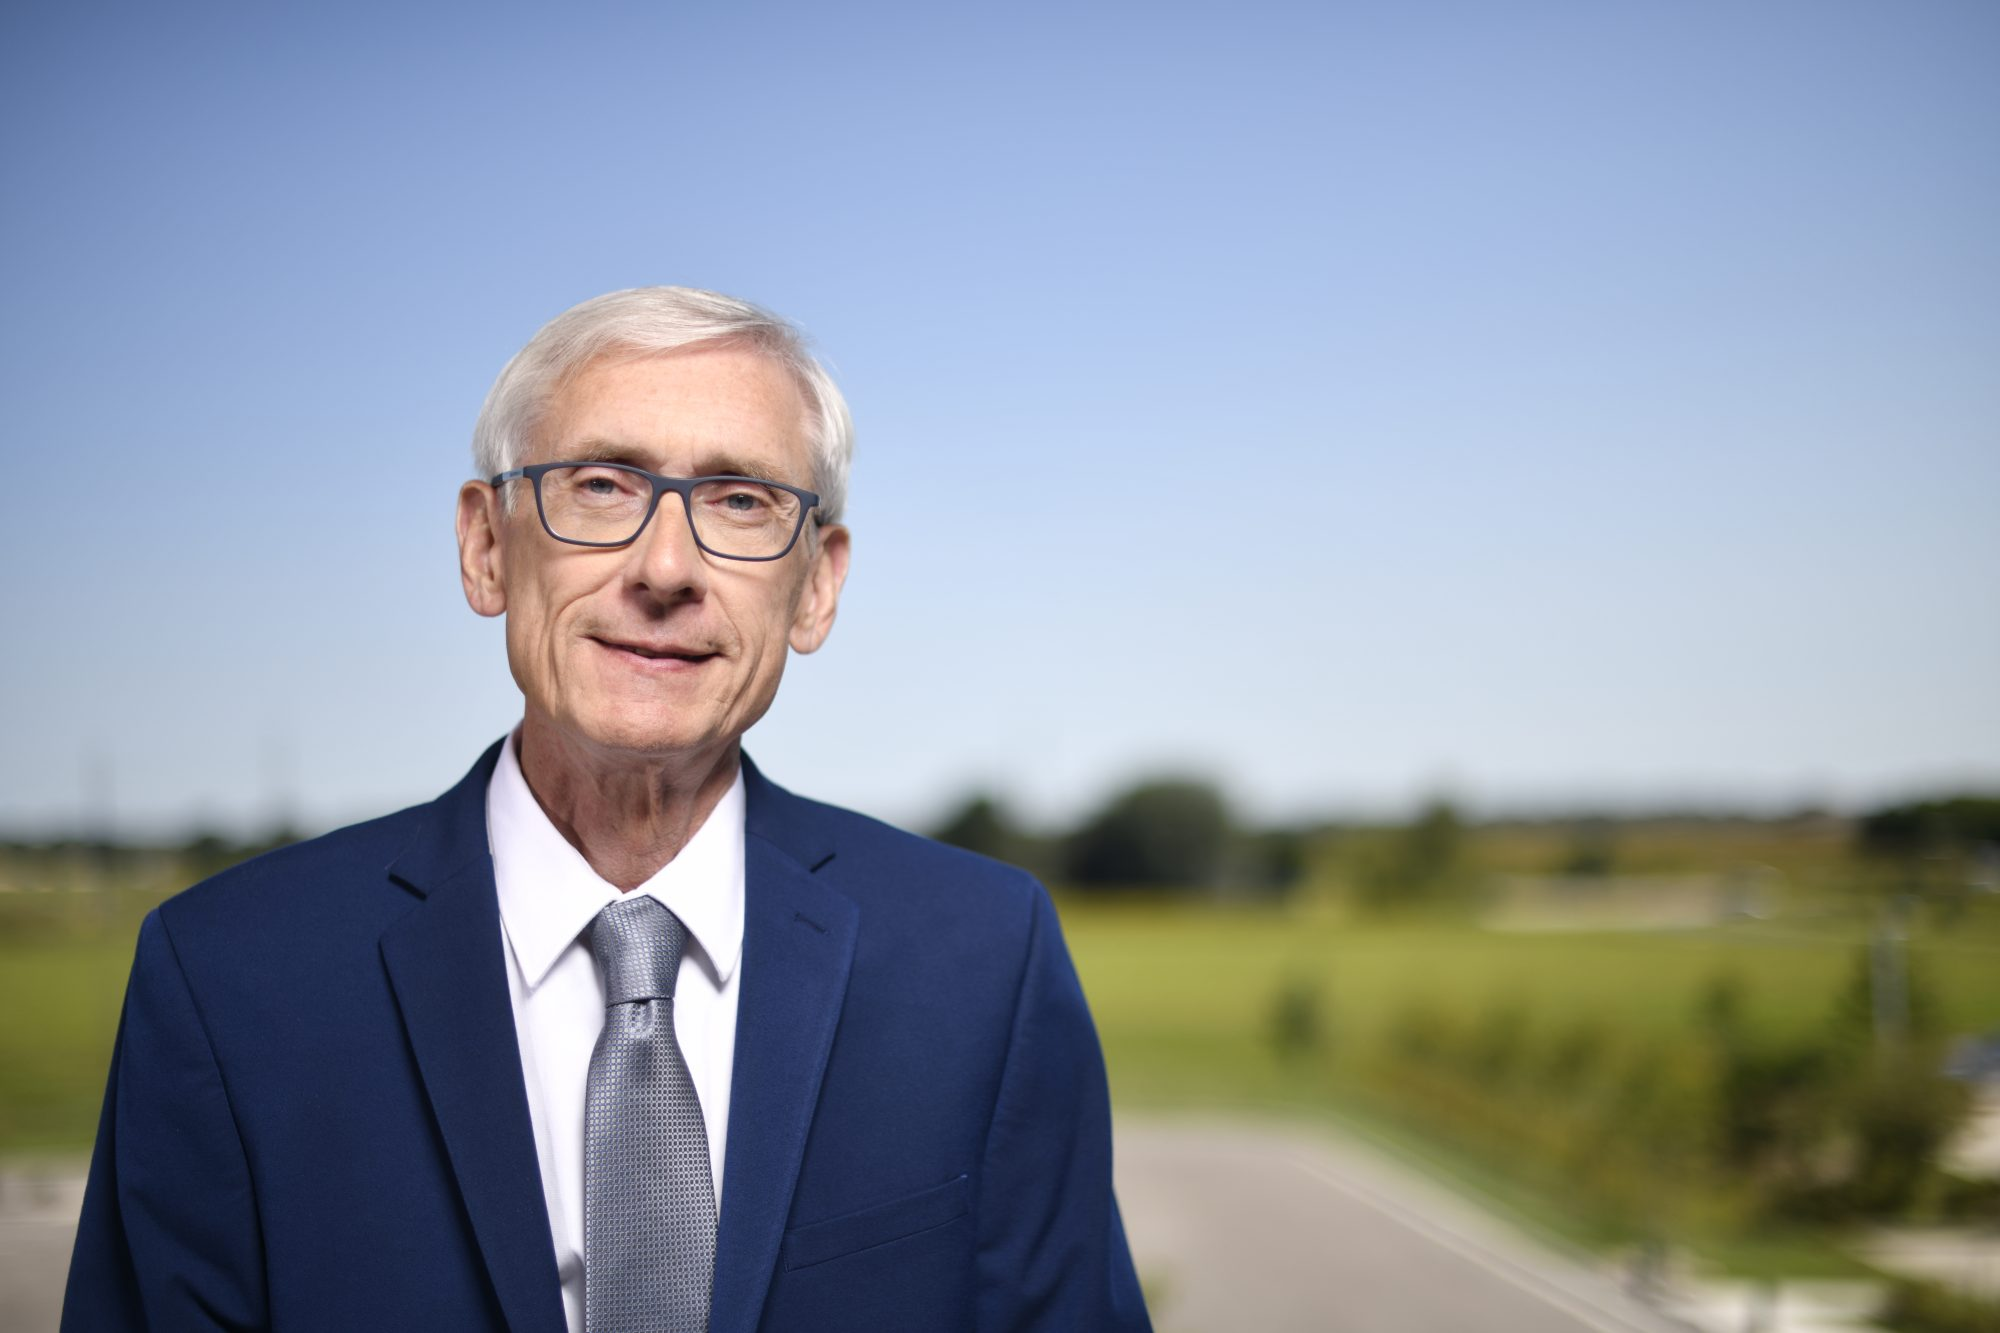 Gov. Evers Announces $4.9 Million Harbor Grant to Support Wisconsin Agricultural Exports